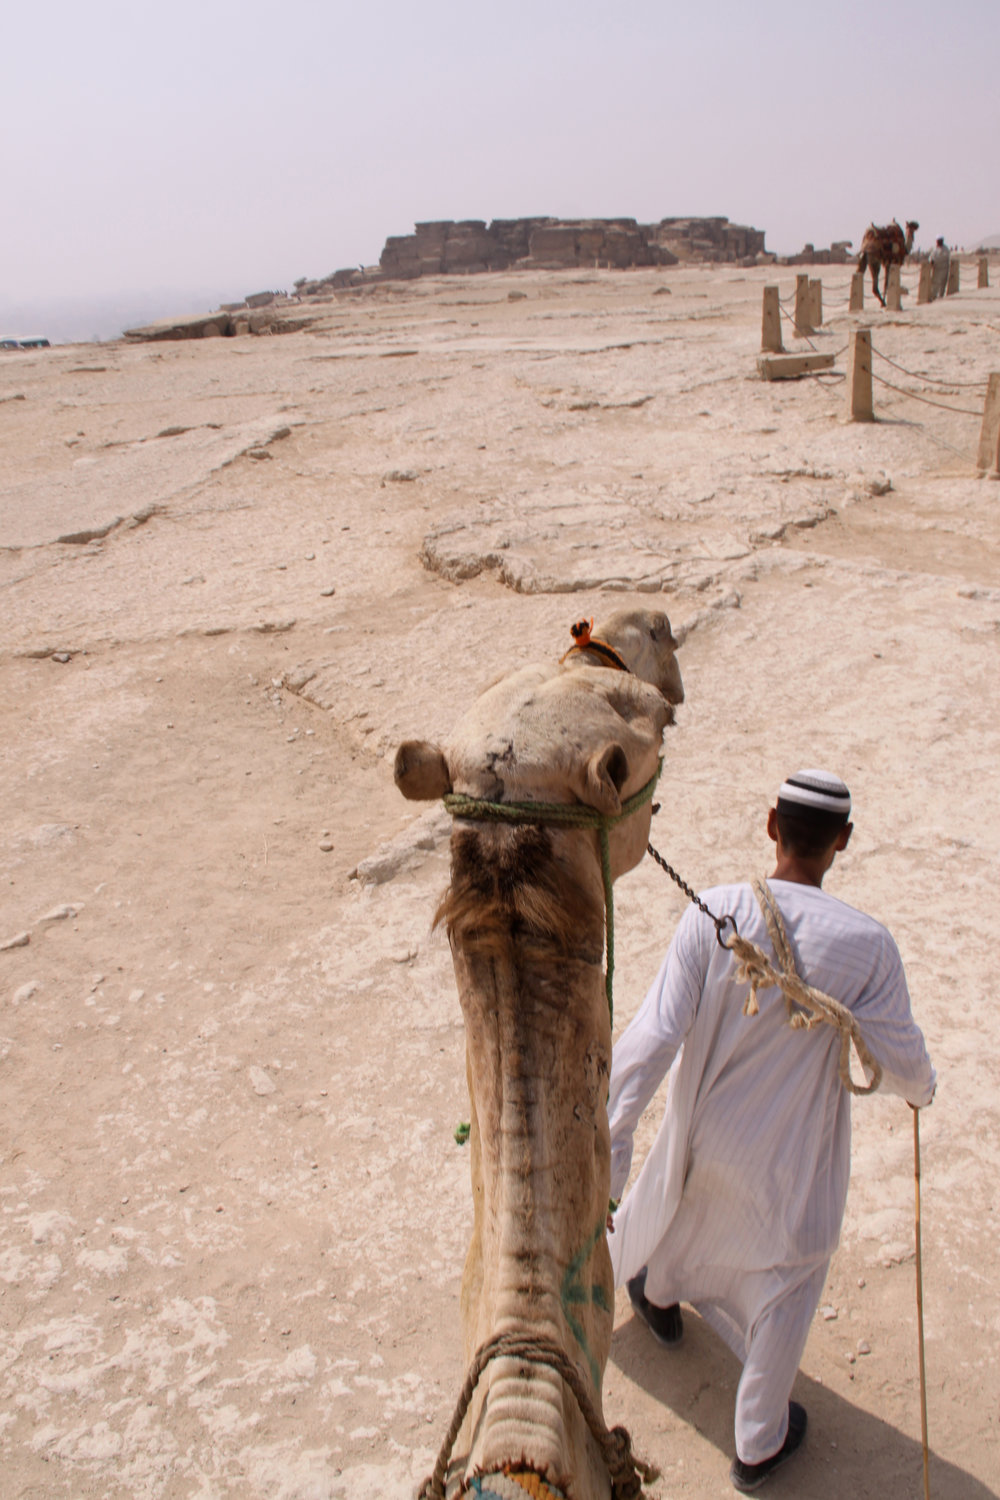 """""""Travel by Camel""""All images © Stephanie Elaine Cavanaugh. All rights reserved."""